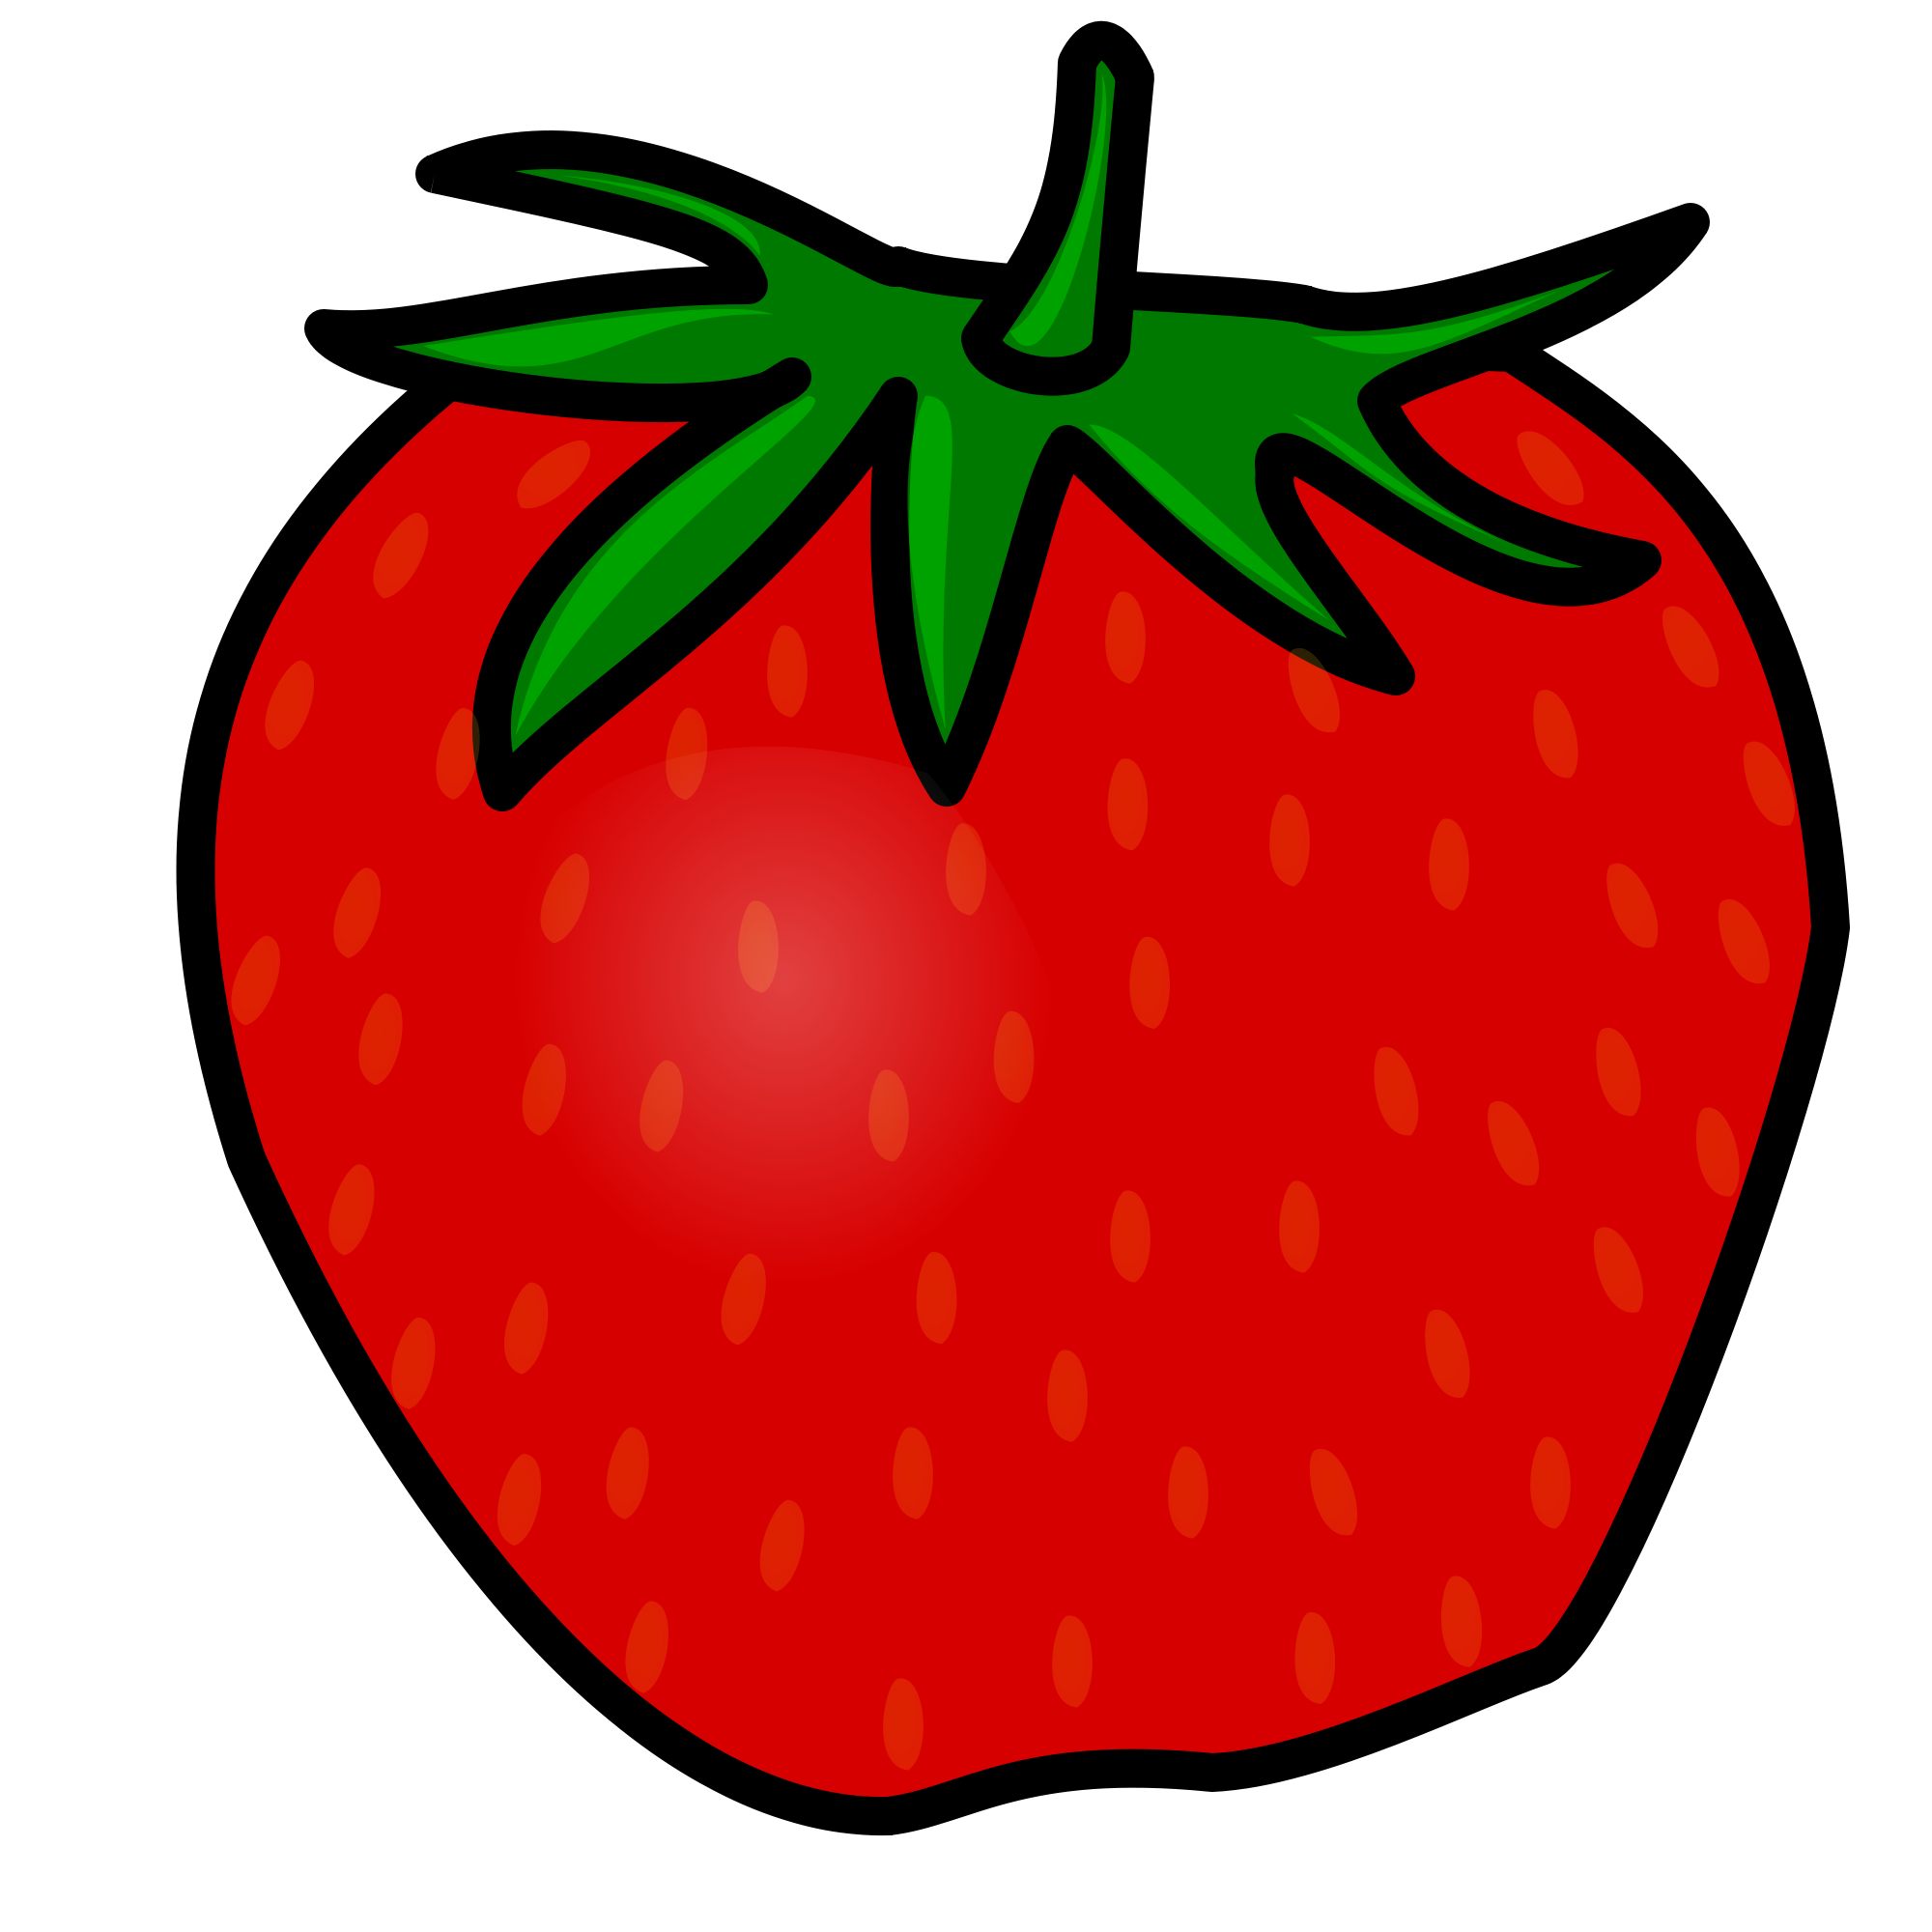 File tux paint strawberry. Strawberries clipart pdf